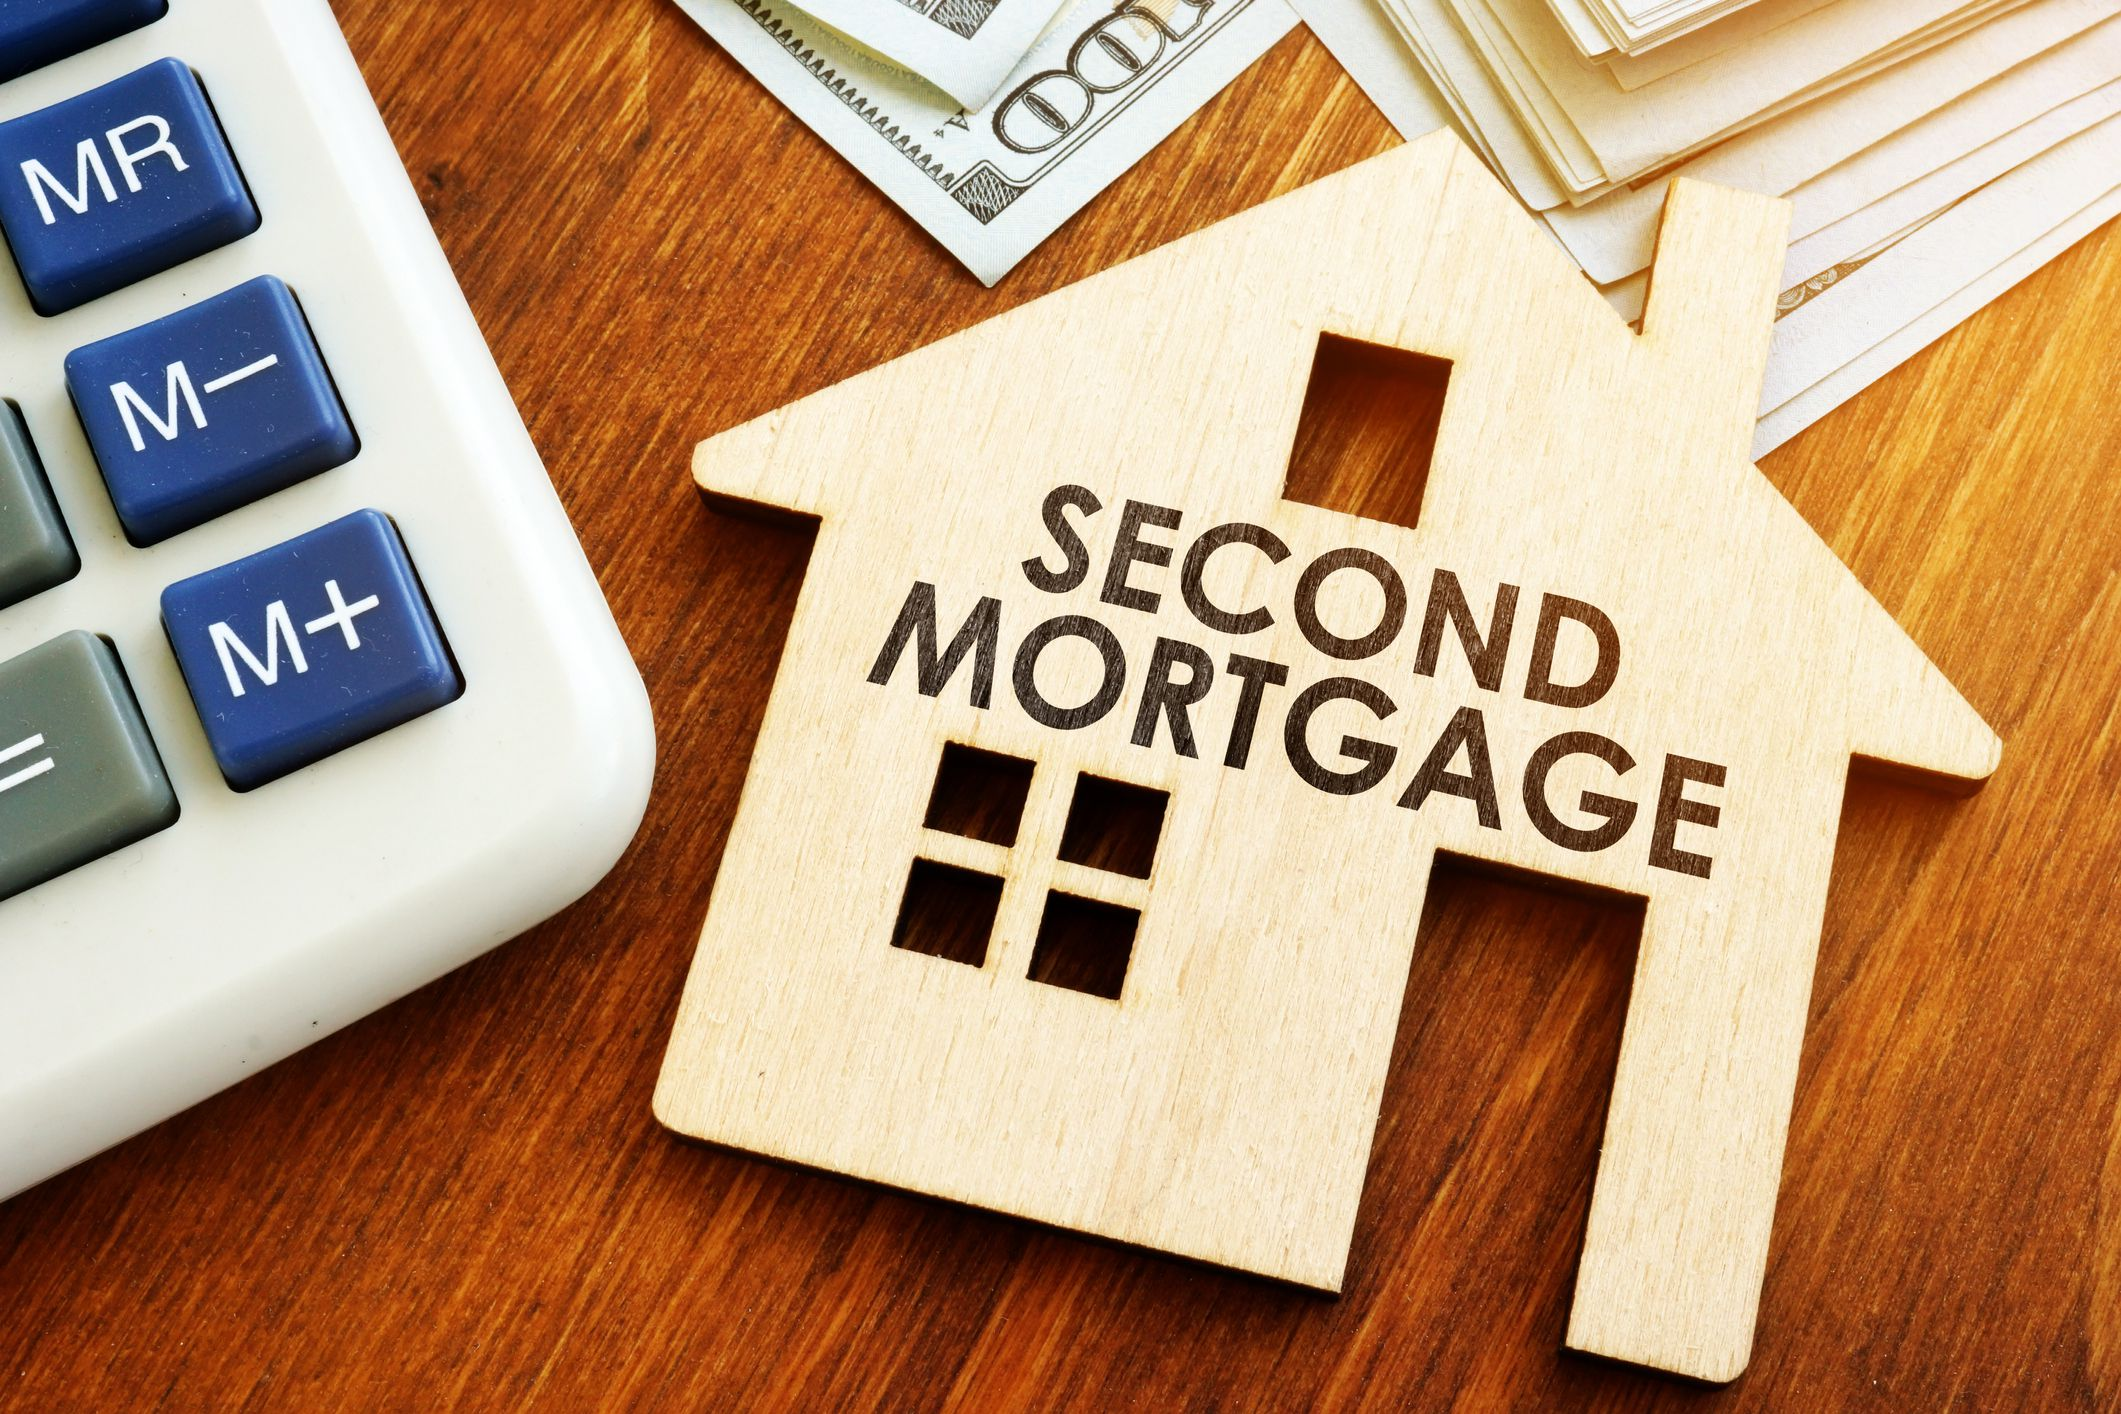 Second Mortgage Definition